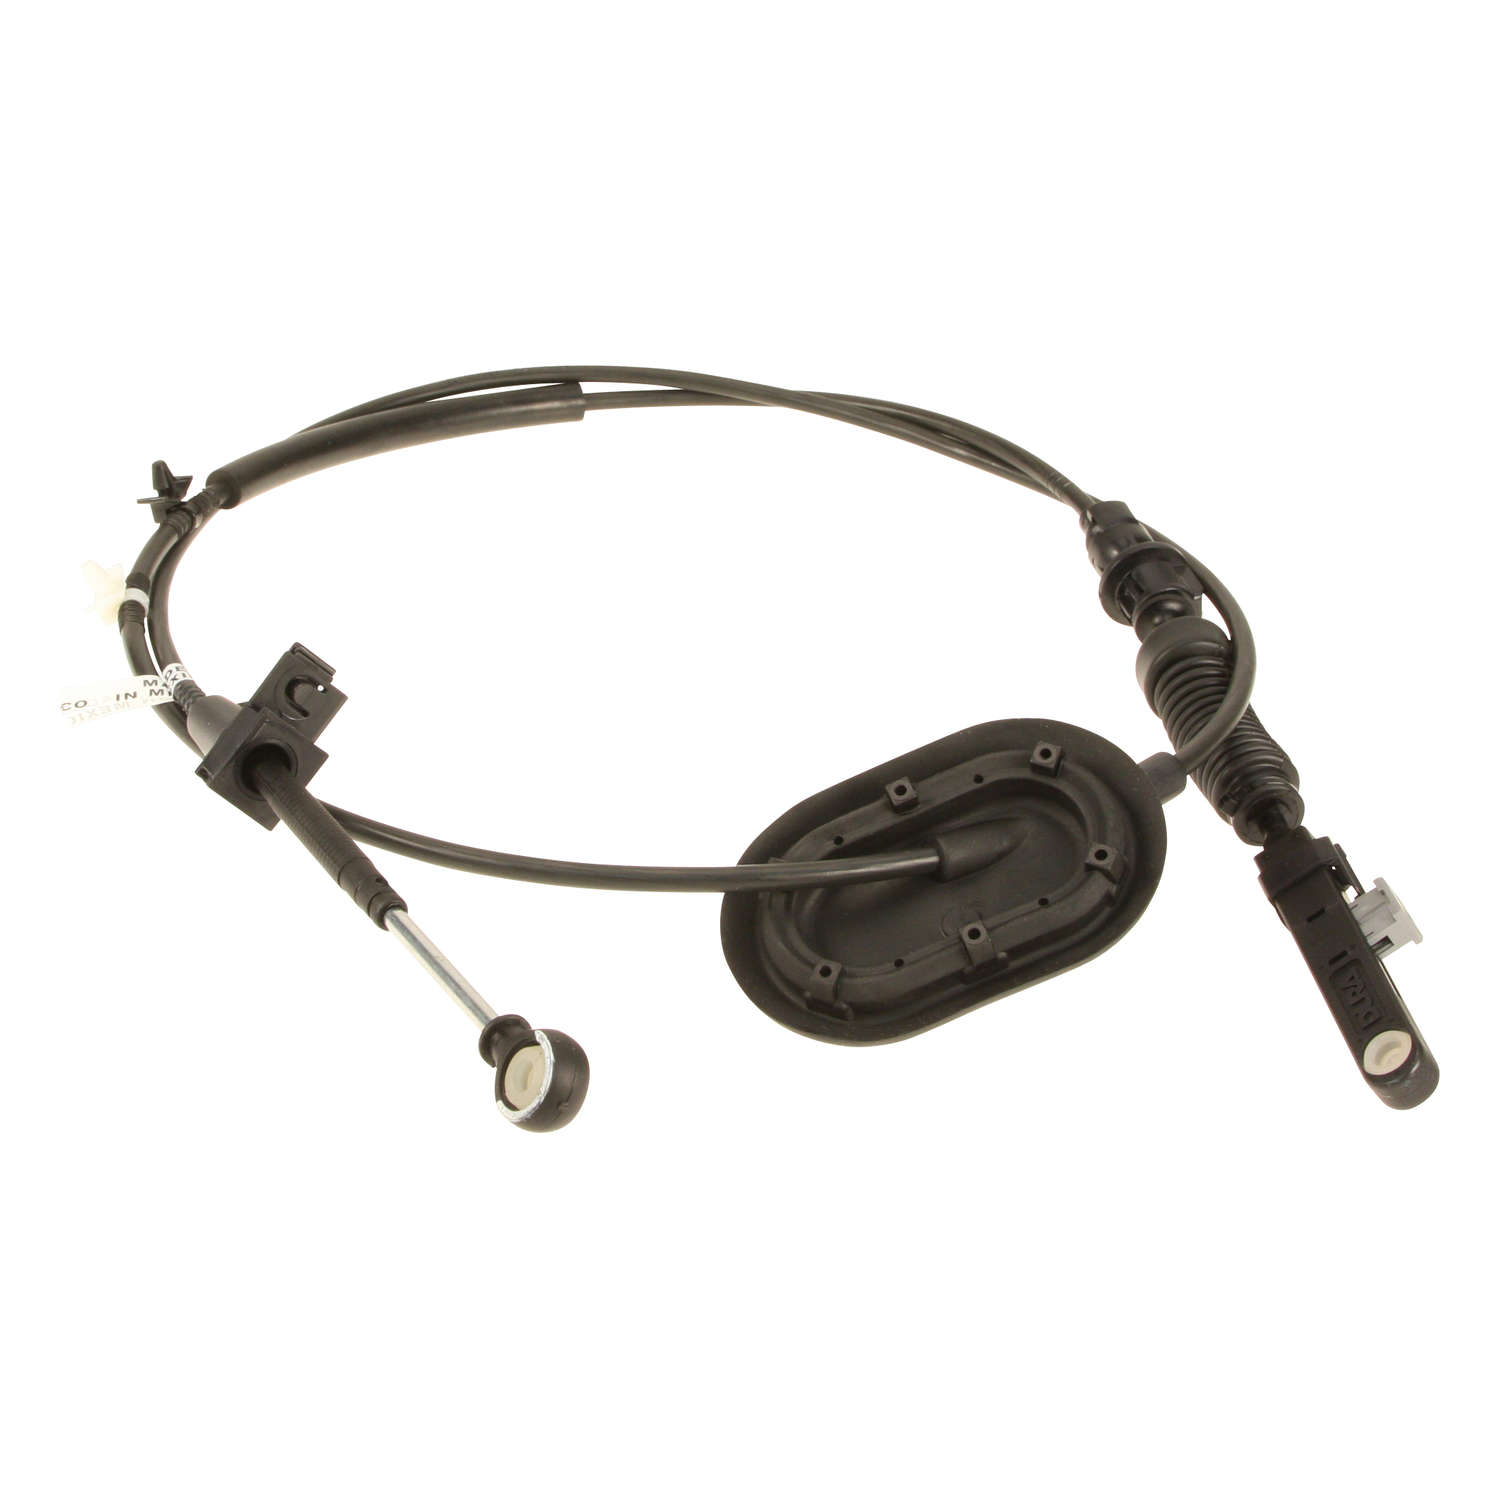 Vortex Style Motion Pro 01-1013 Twist Throttle Replacement Cable